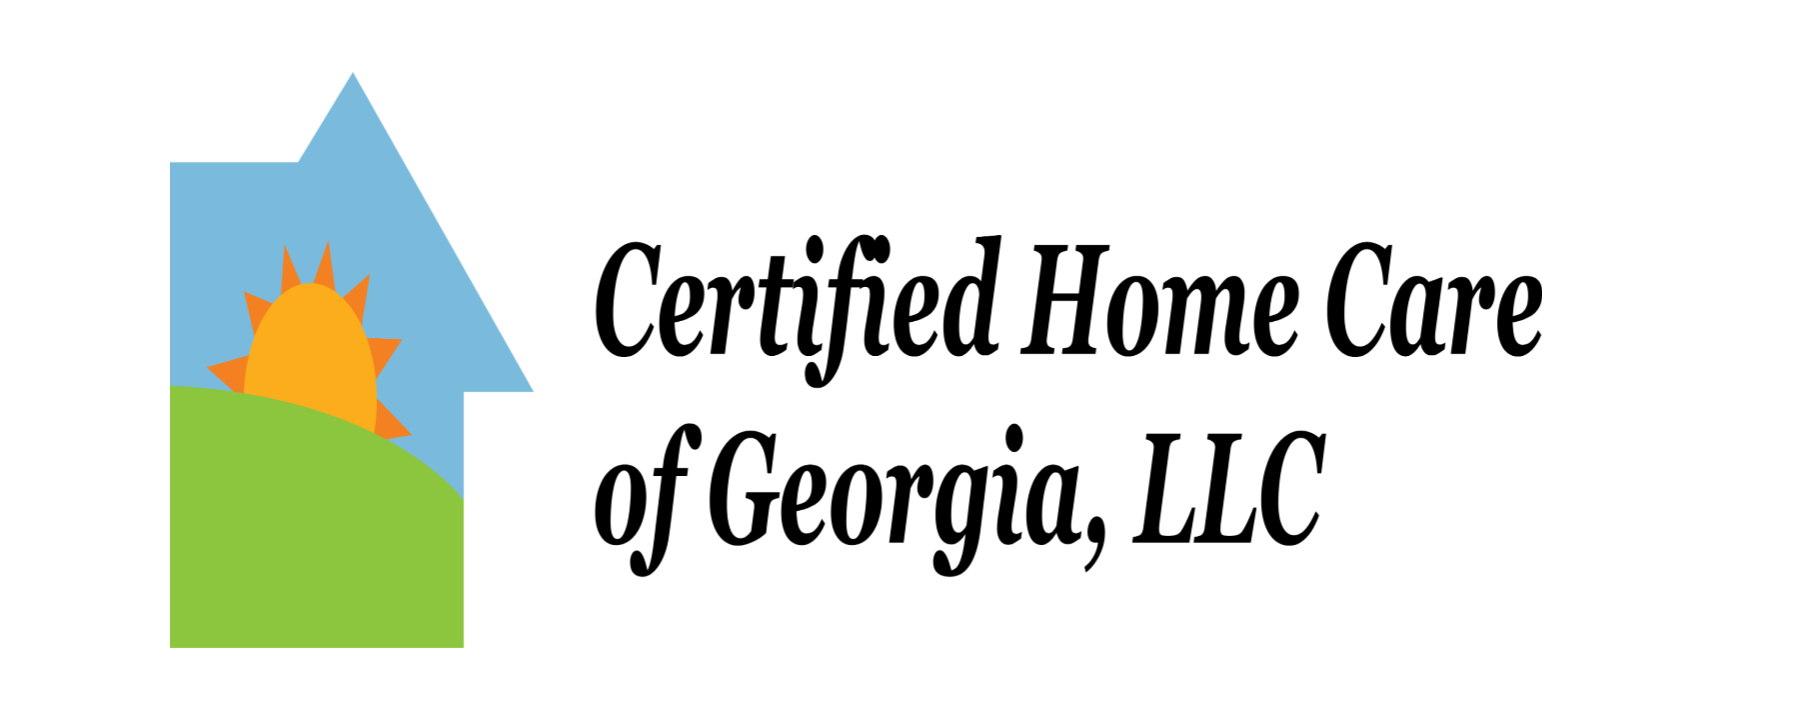 Certified Home Care of Georgia